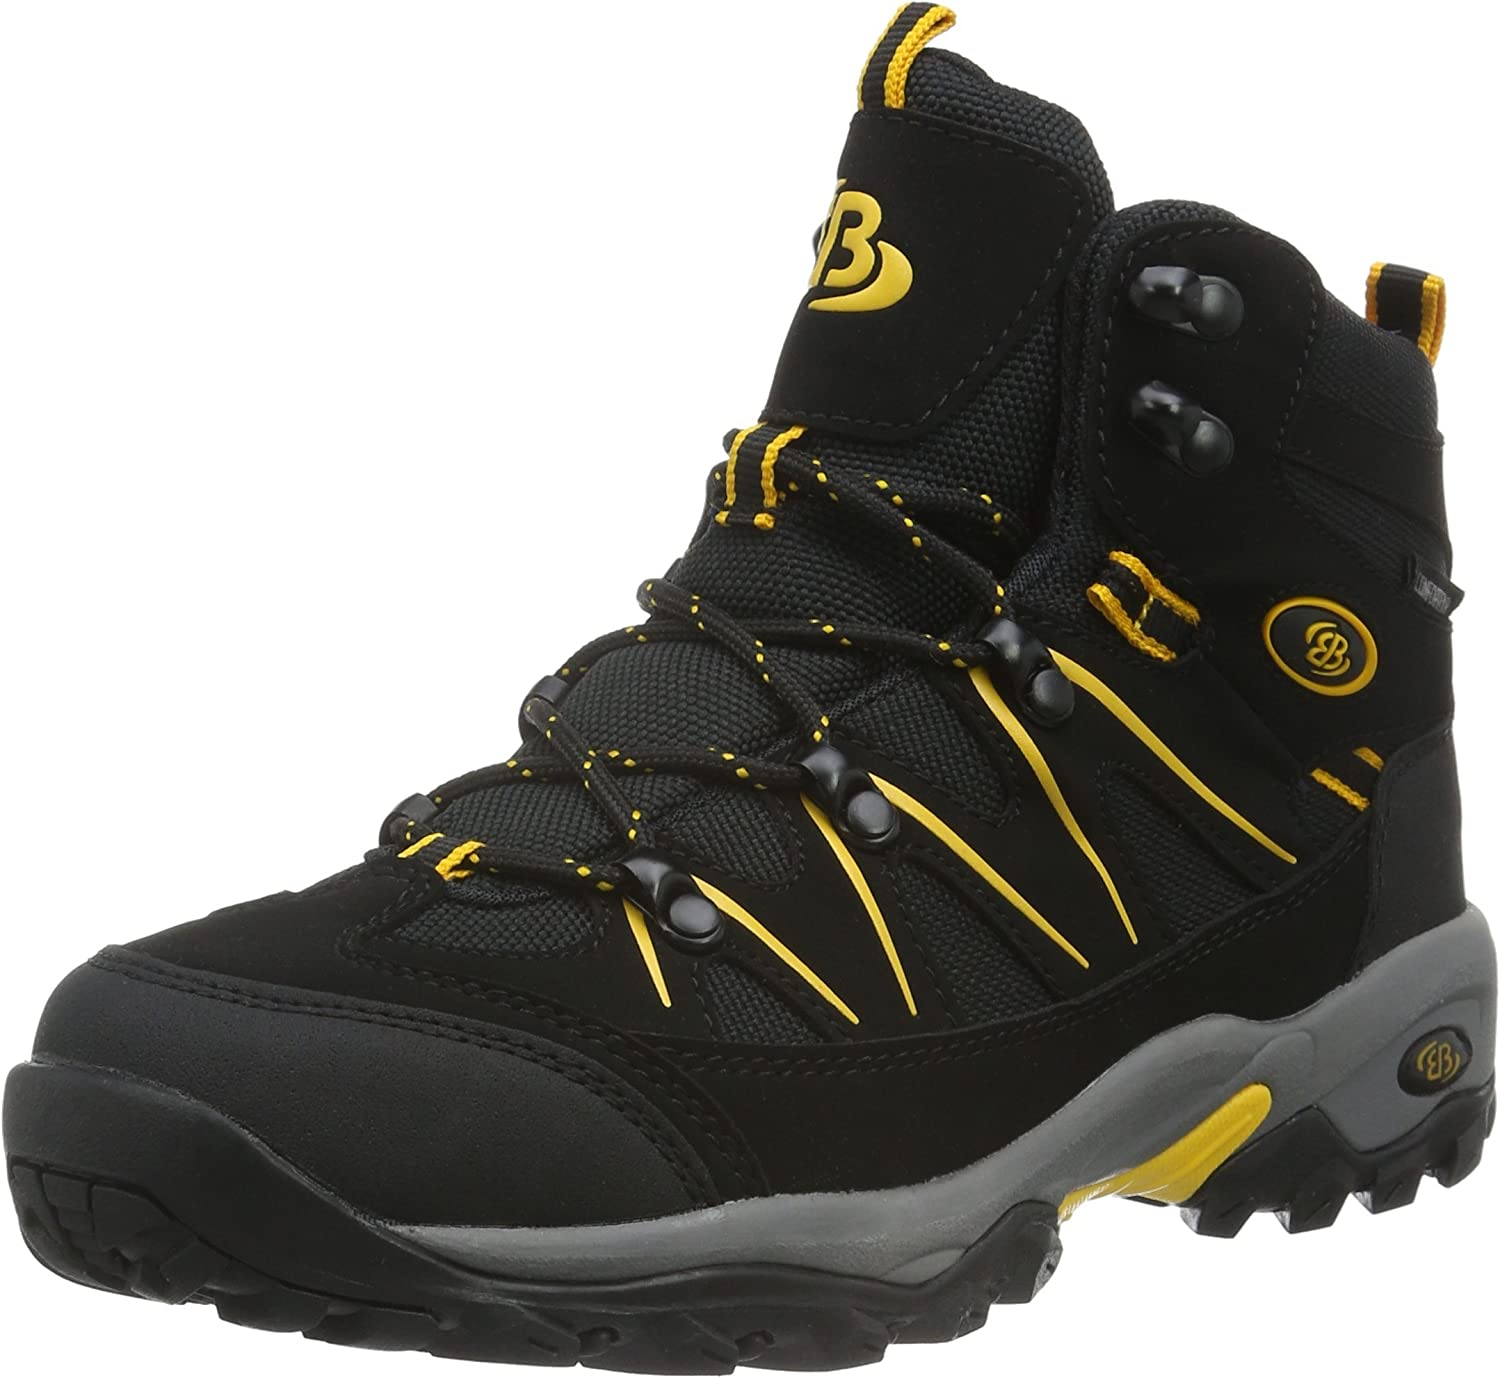 Bruetting Unisex Adults' Mount Hunter High Low Rise Hiking Boots